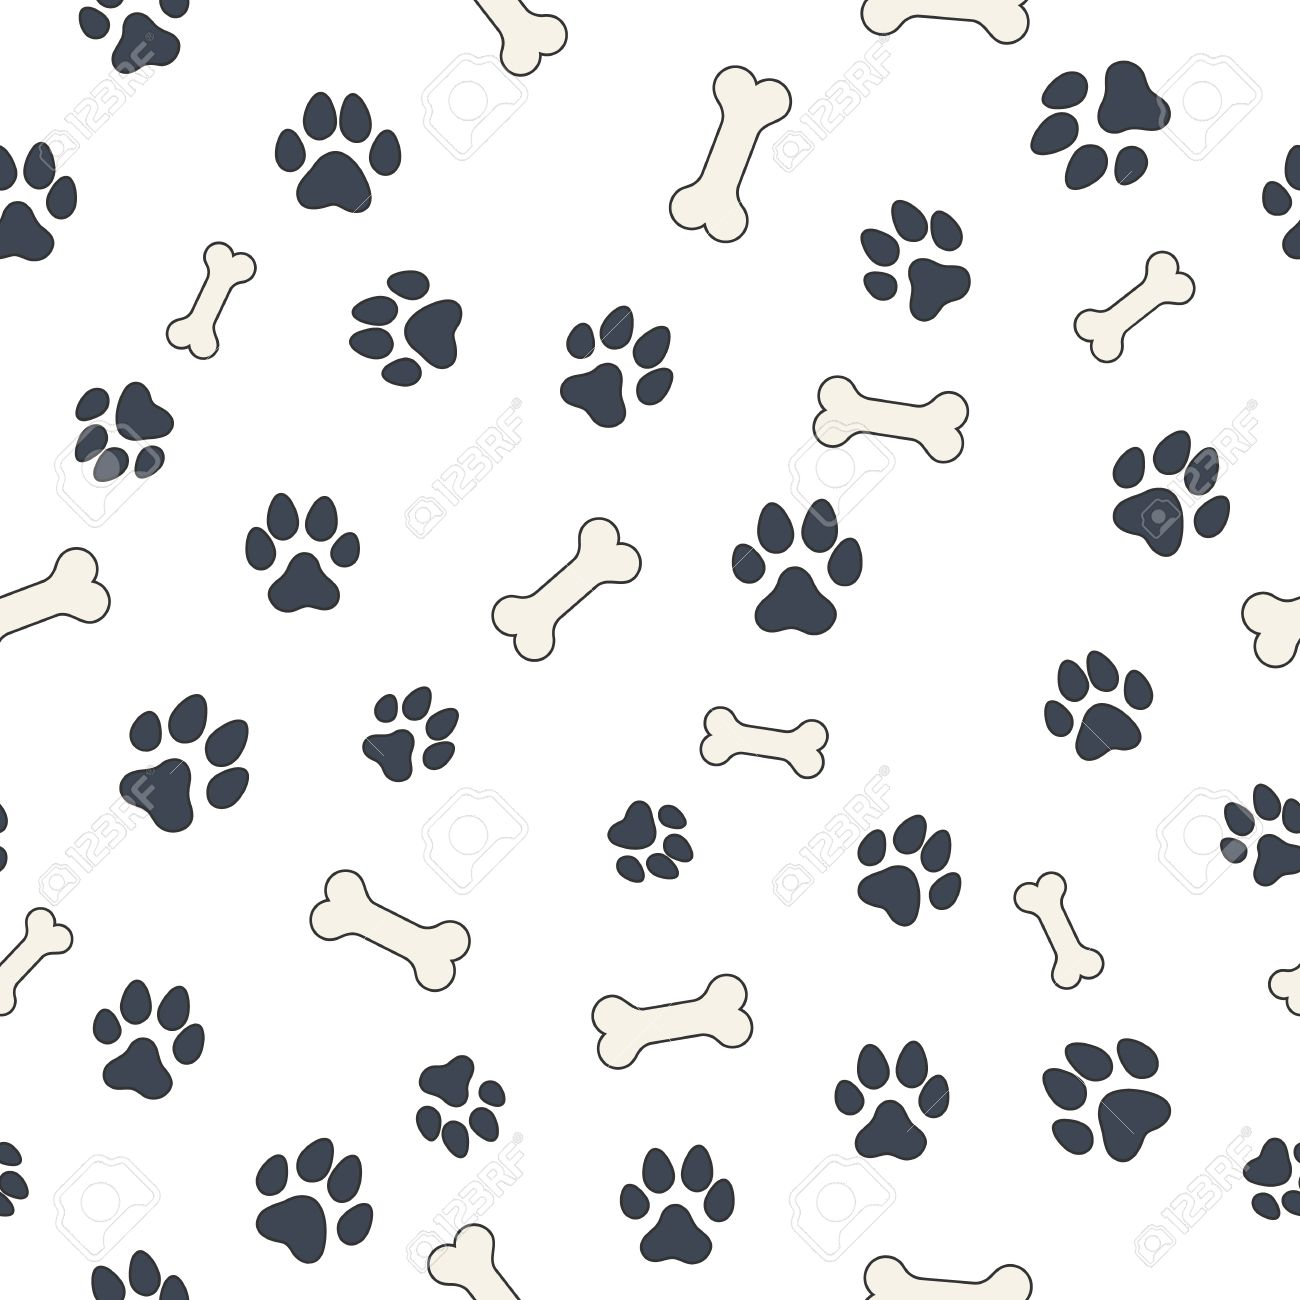 Seamless Wallpaper Pattern With Dogs Bones And Paws For Your Design Stock Vector